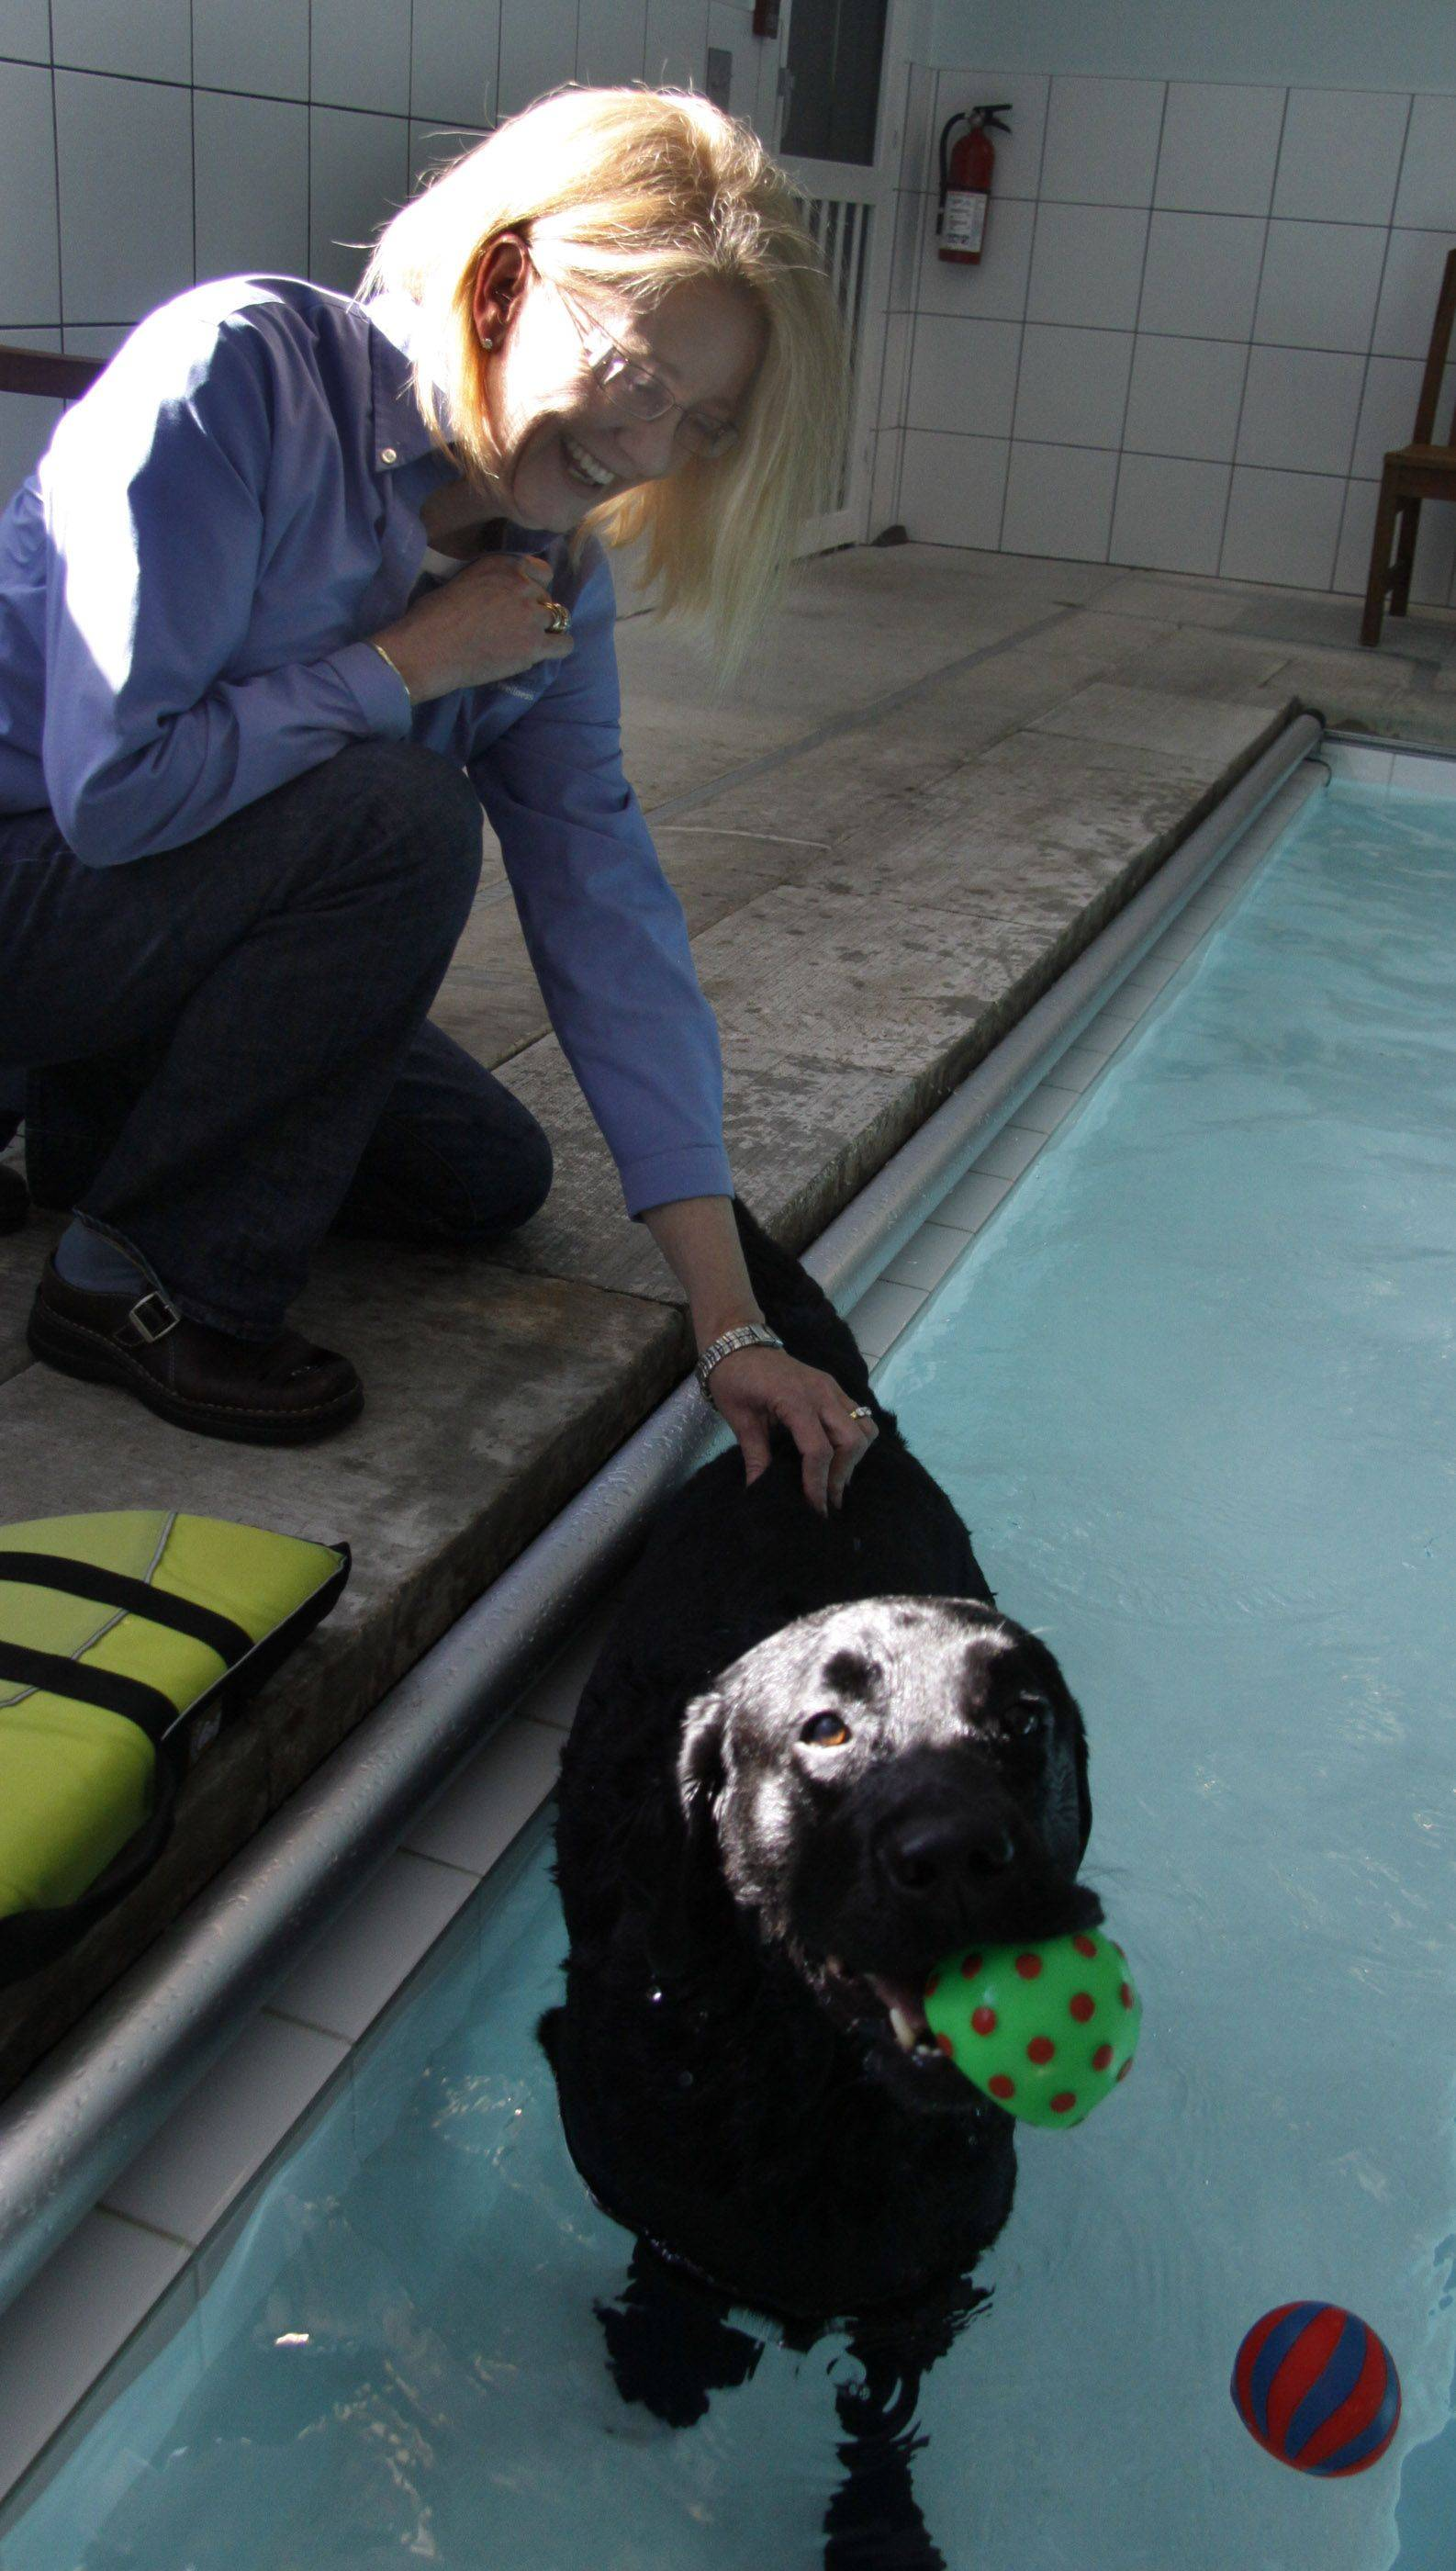 Natural Healing Whole Dog Wellness owner Lee Deaton pets Ringo, a 6-year-old black lab Friday as he takes a break from his recreational swim. Ringo has been coming to Natural Healing every week for the past four years.